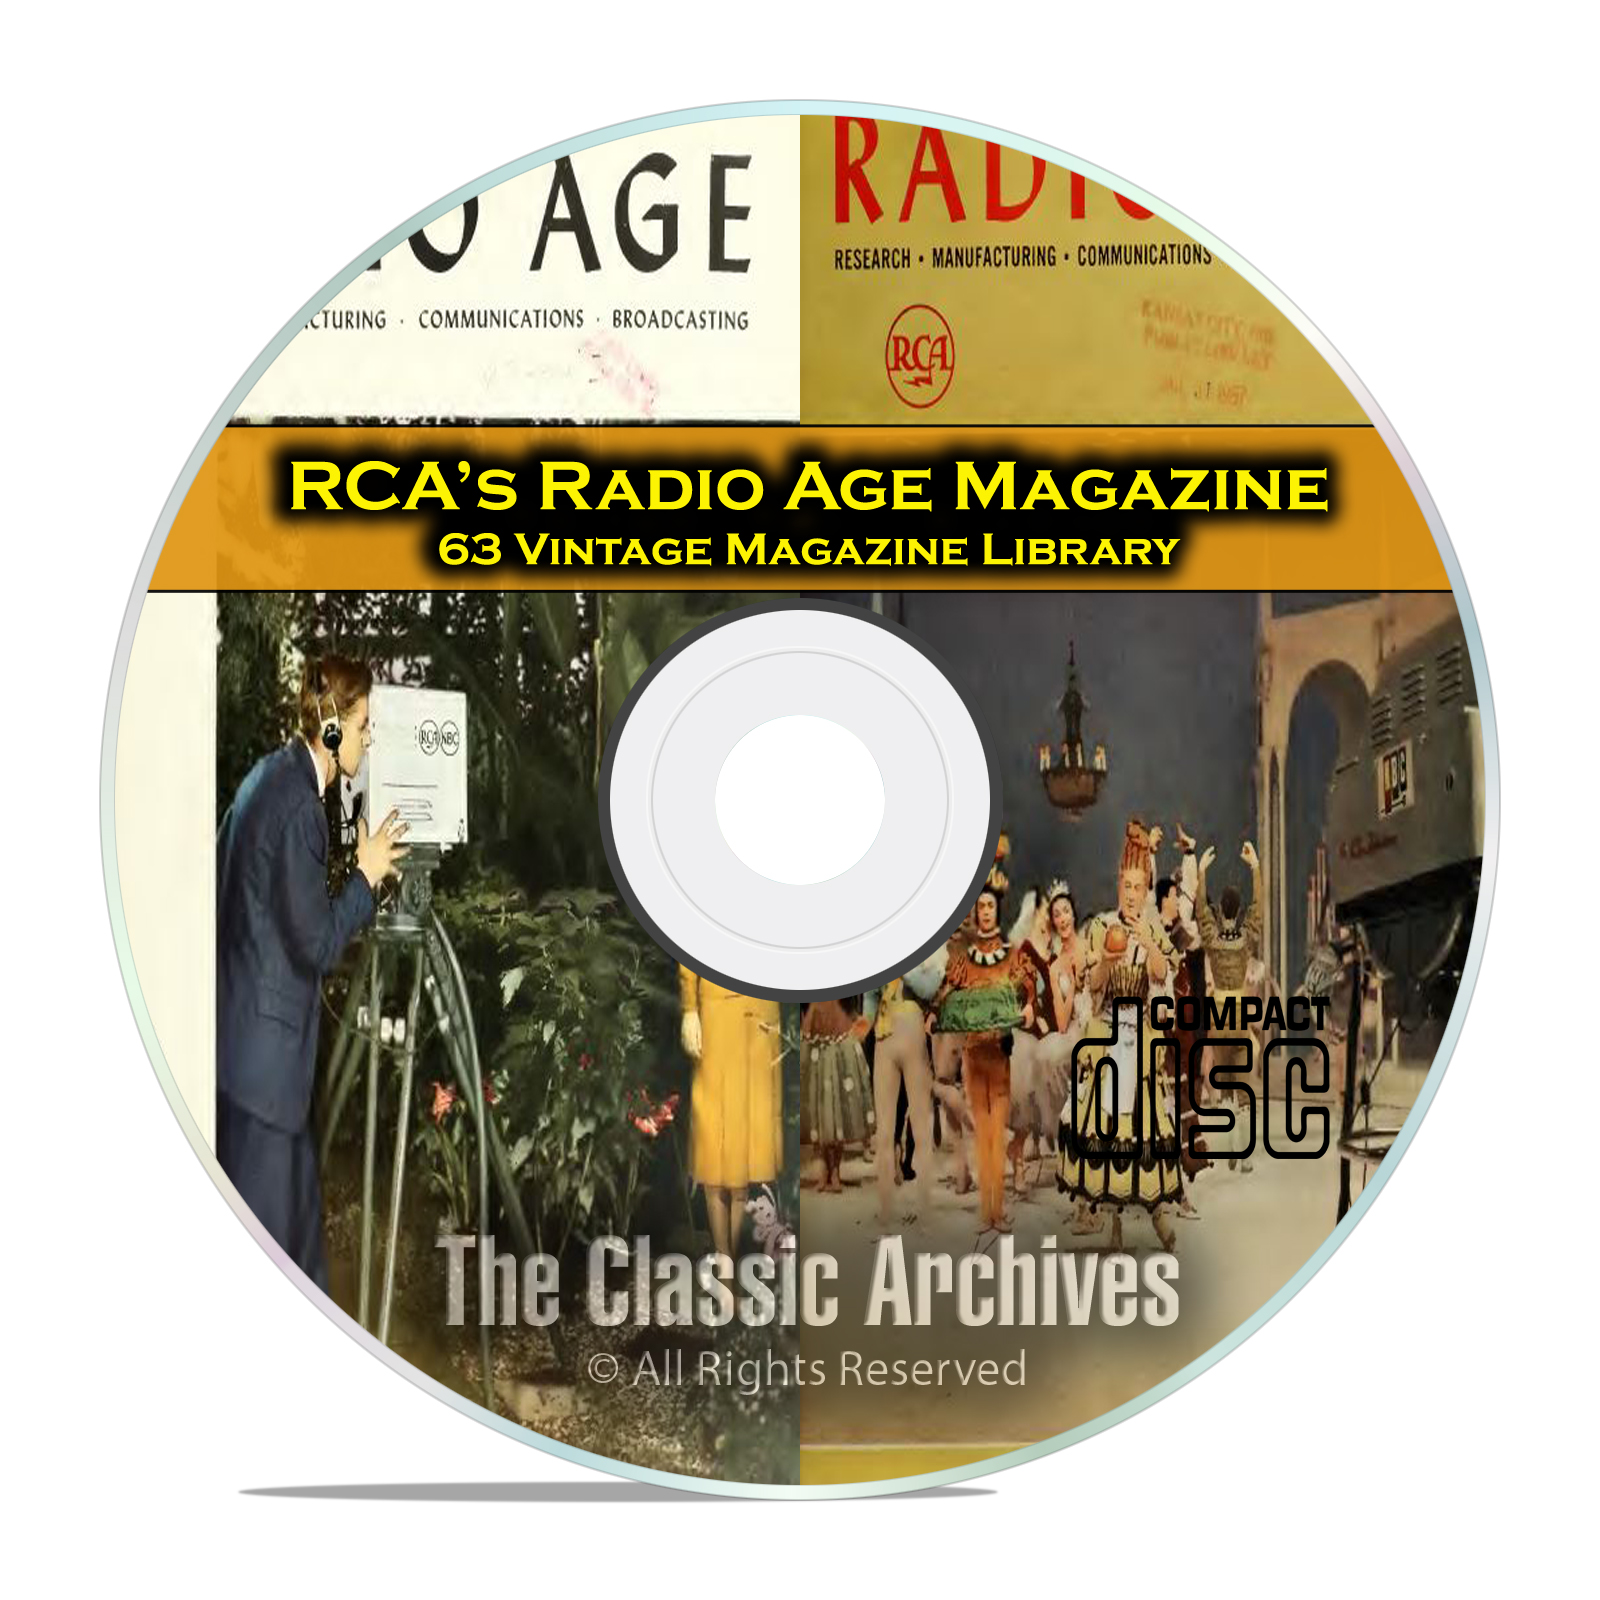 RCA Radio Age, 63 Vintage Old Time Radio Magazine Collection on PDF CD